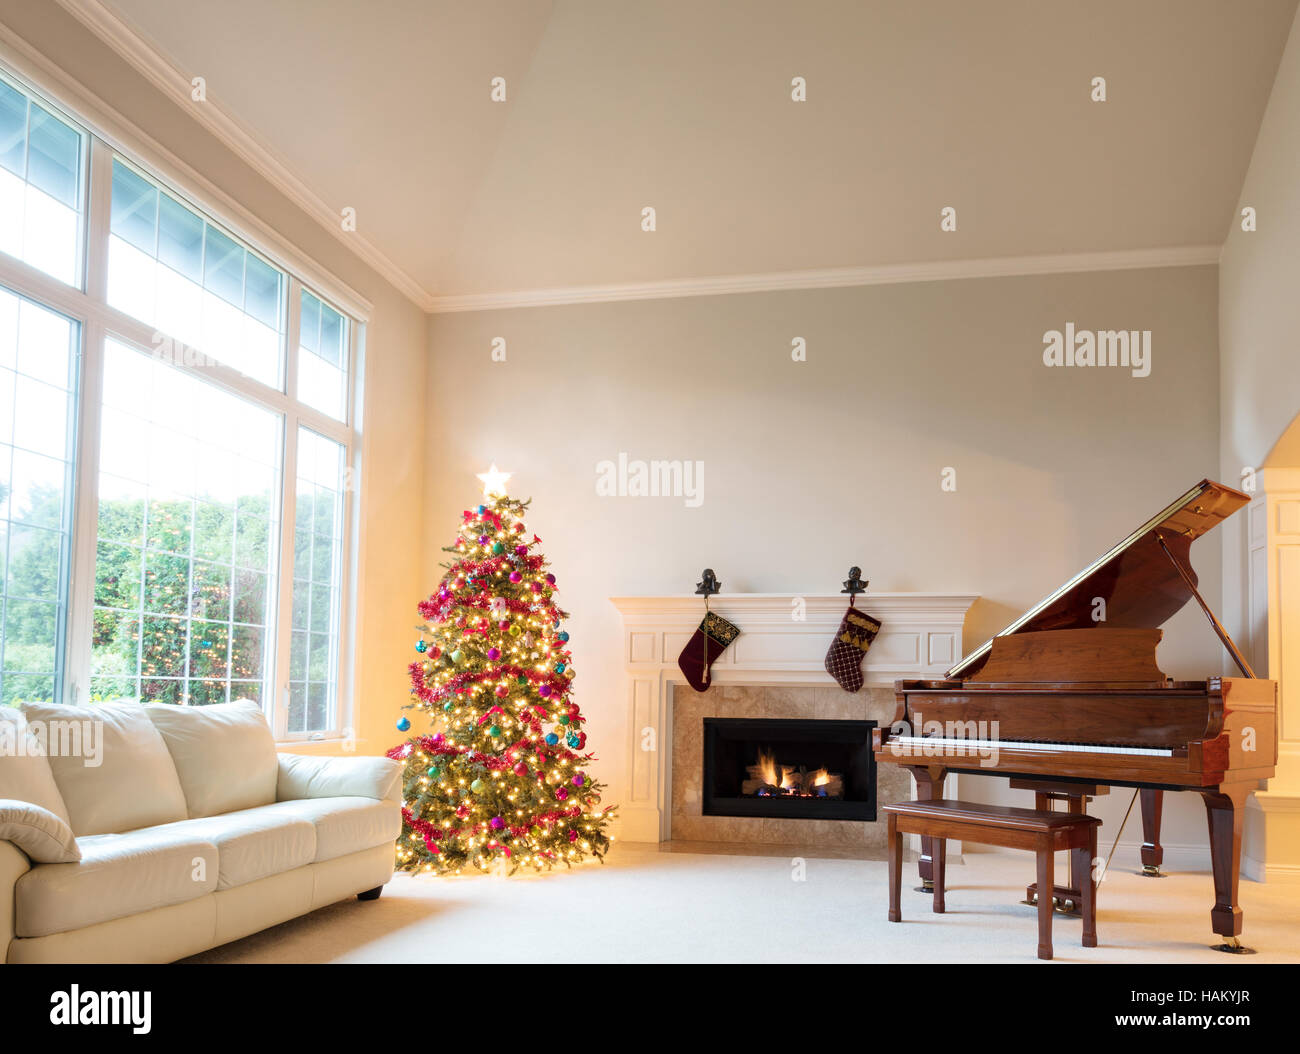 Christmas Tree In Living Room With Burning Fireplace And Grand Piano During Bright Day Time